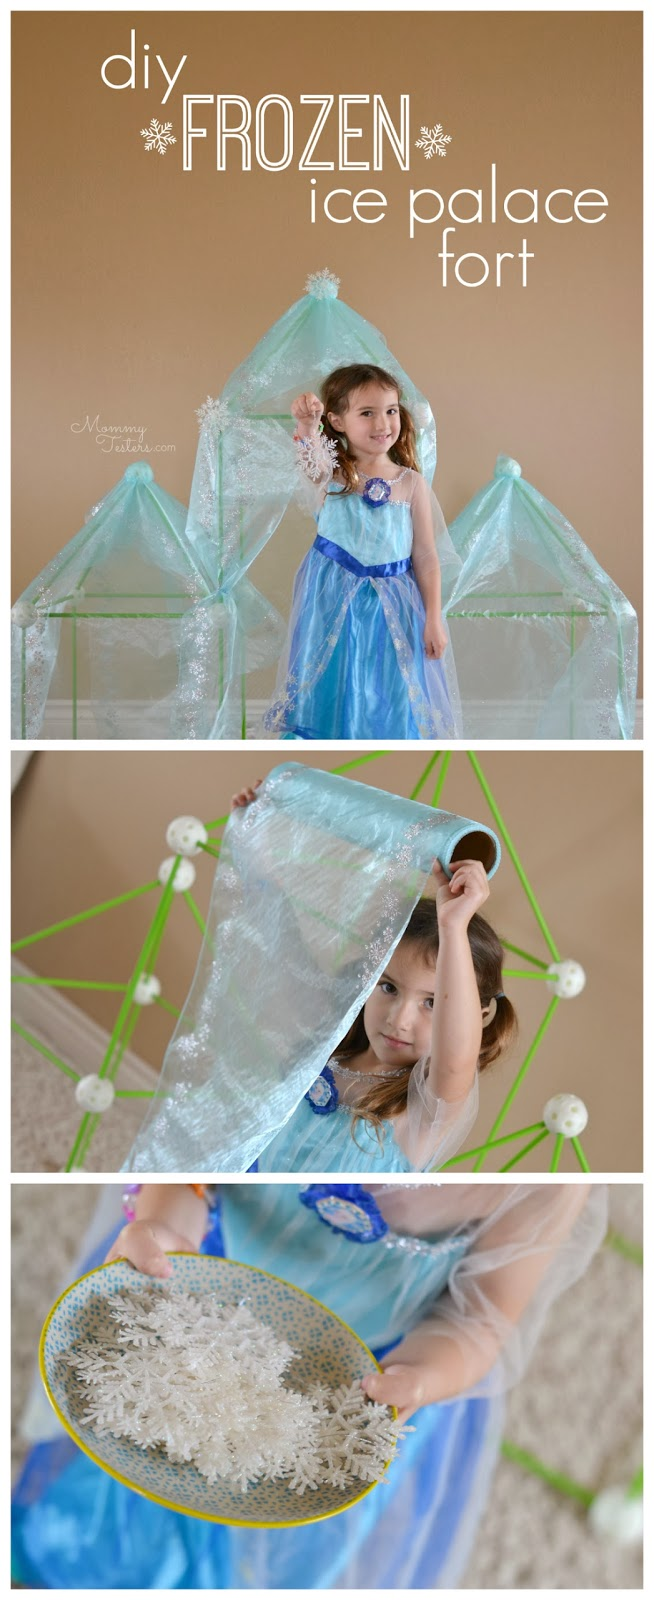 Mommy Testers, Disney Frozen Ice Palace, DIY Frozen Ice Palace, DIY FROZEN Ice Castle, DIY Frozen Ice Palace, DIY Disney Frozen Castle, How to make an ice palace fort